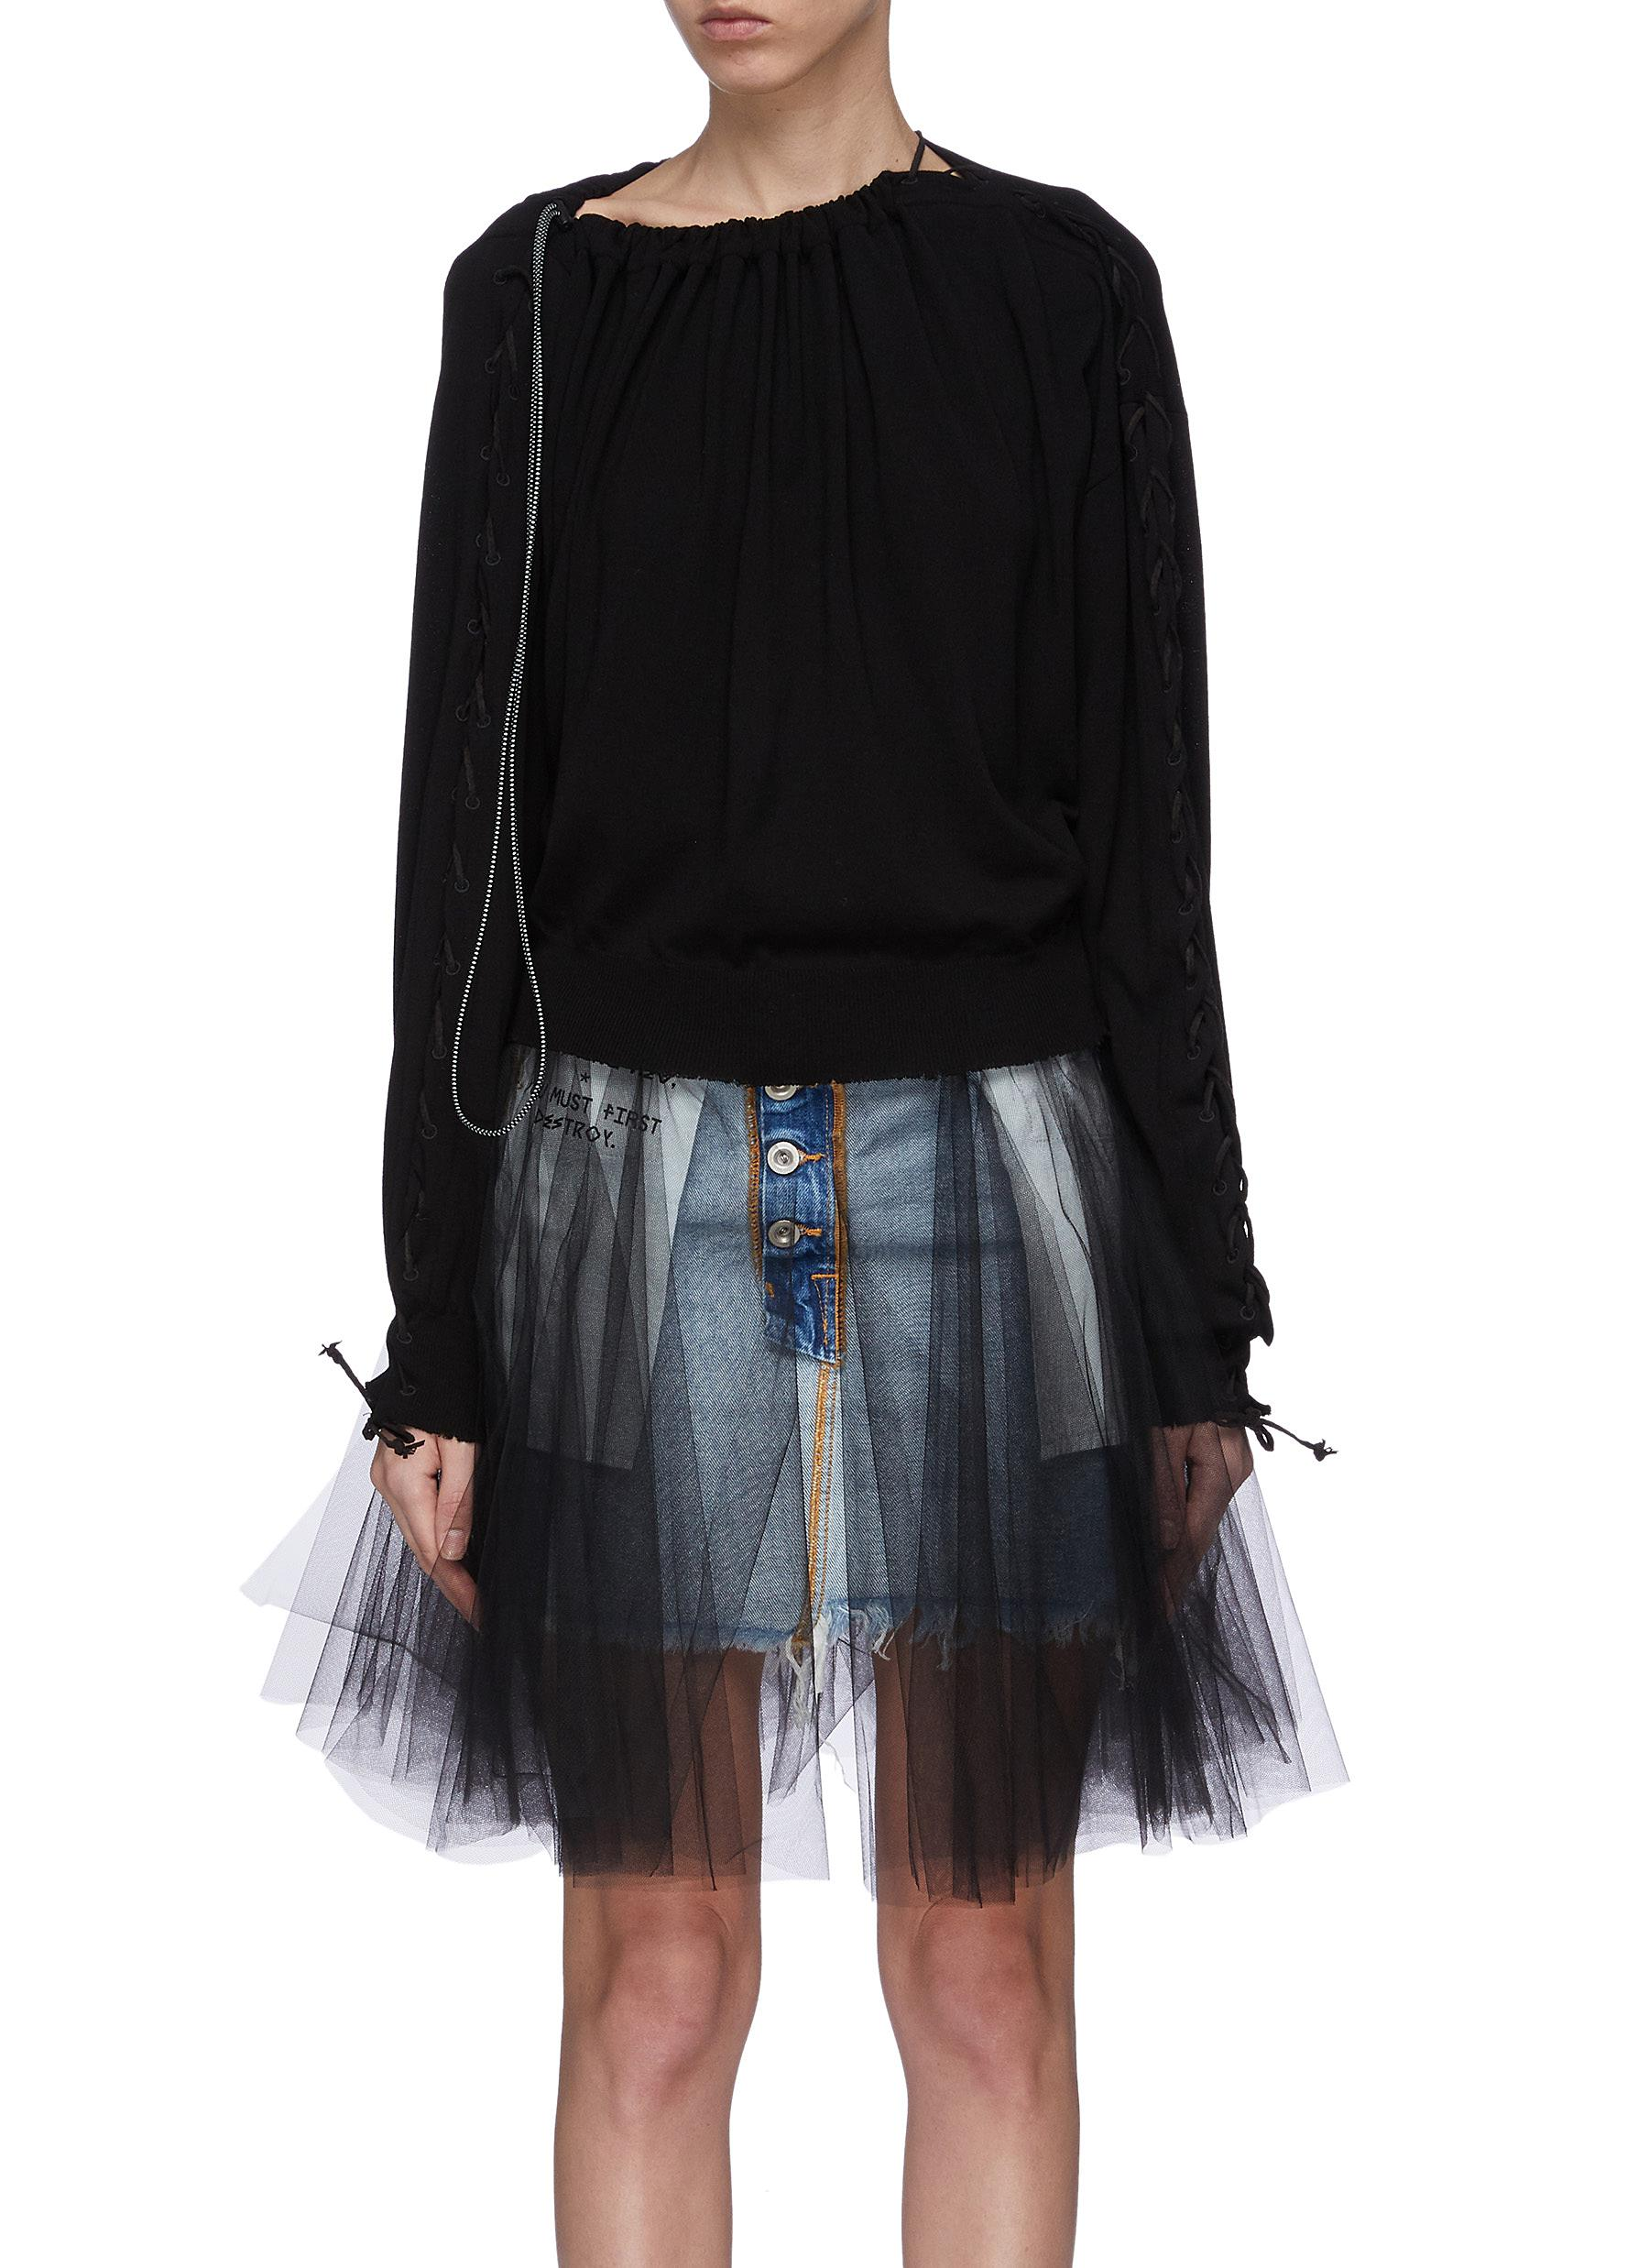 Lace-up sleeve drawcord collar top by Ben Taverniti Unravel Project